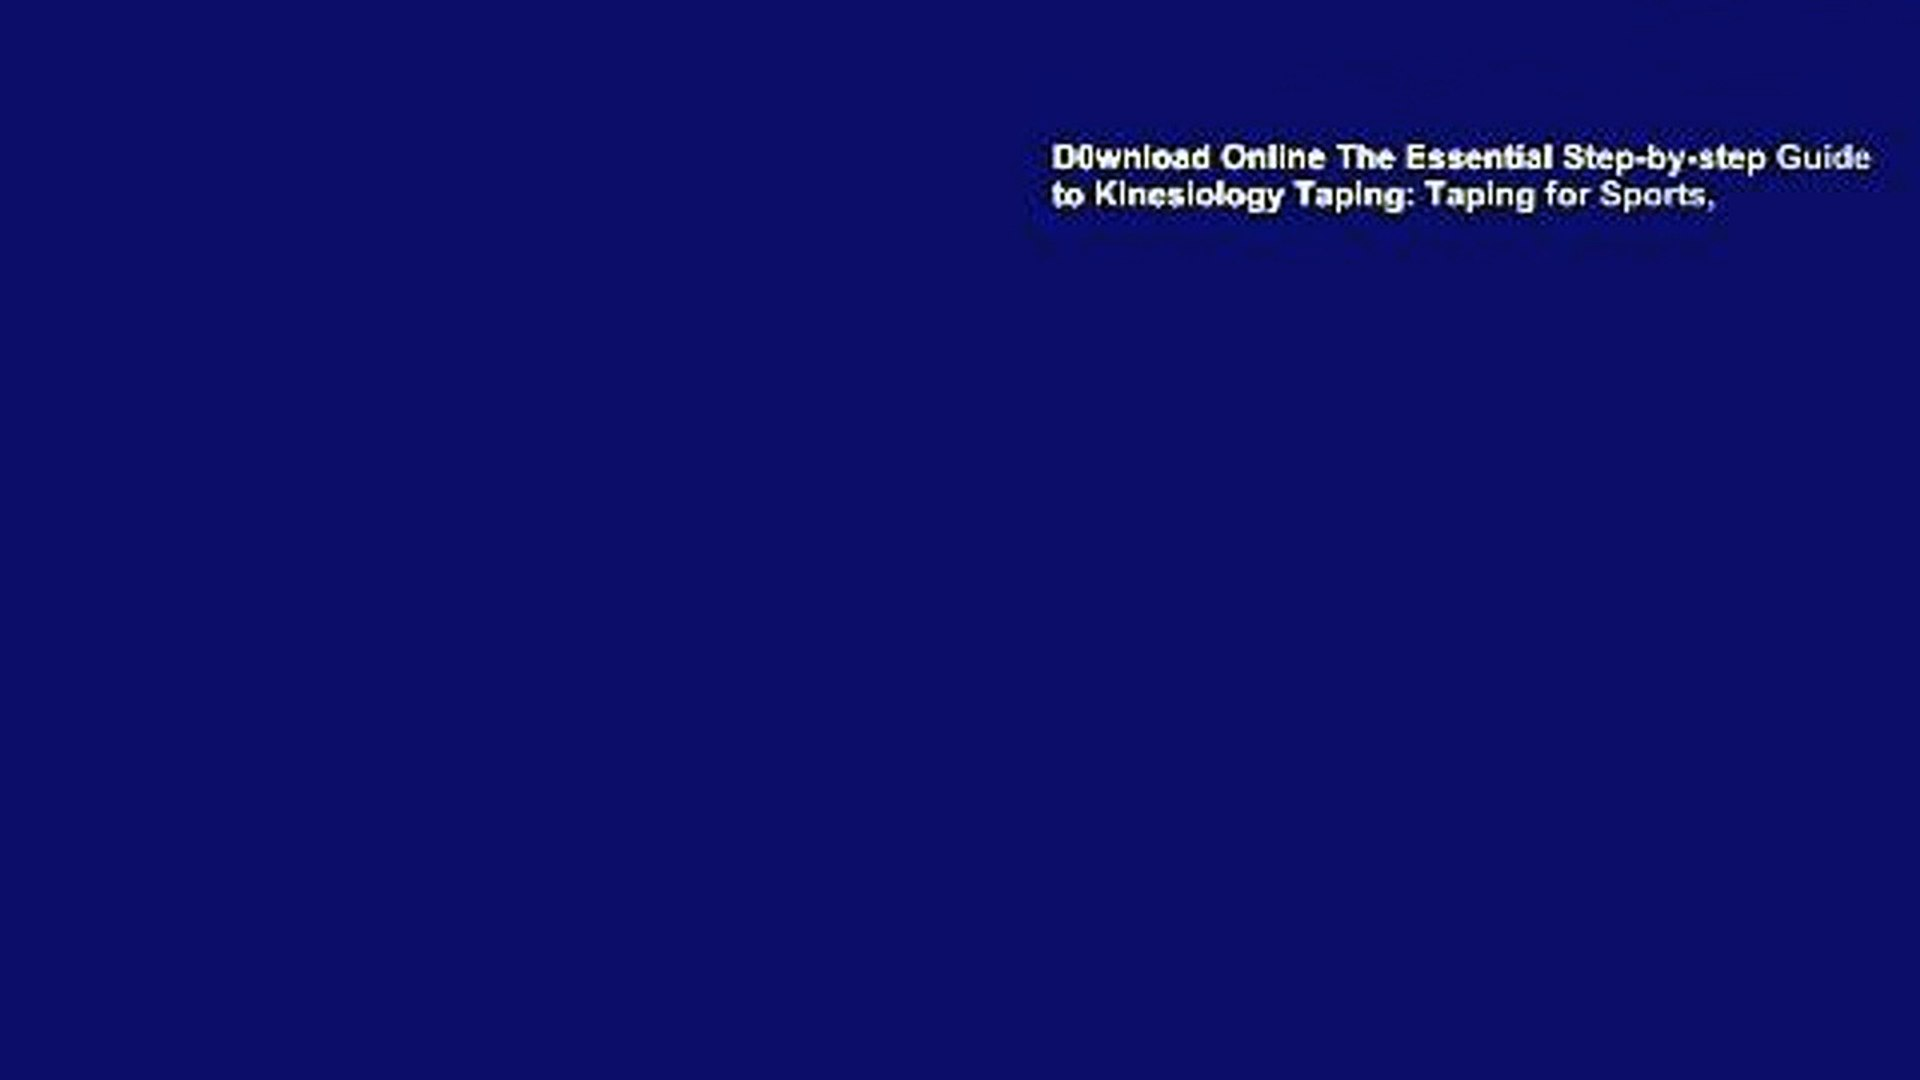 D0wnload Online The Essential Step by step Guide to Kinesiology 1920x1080